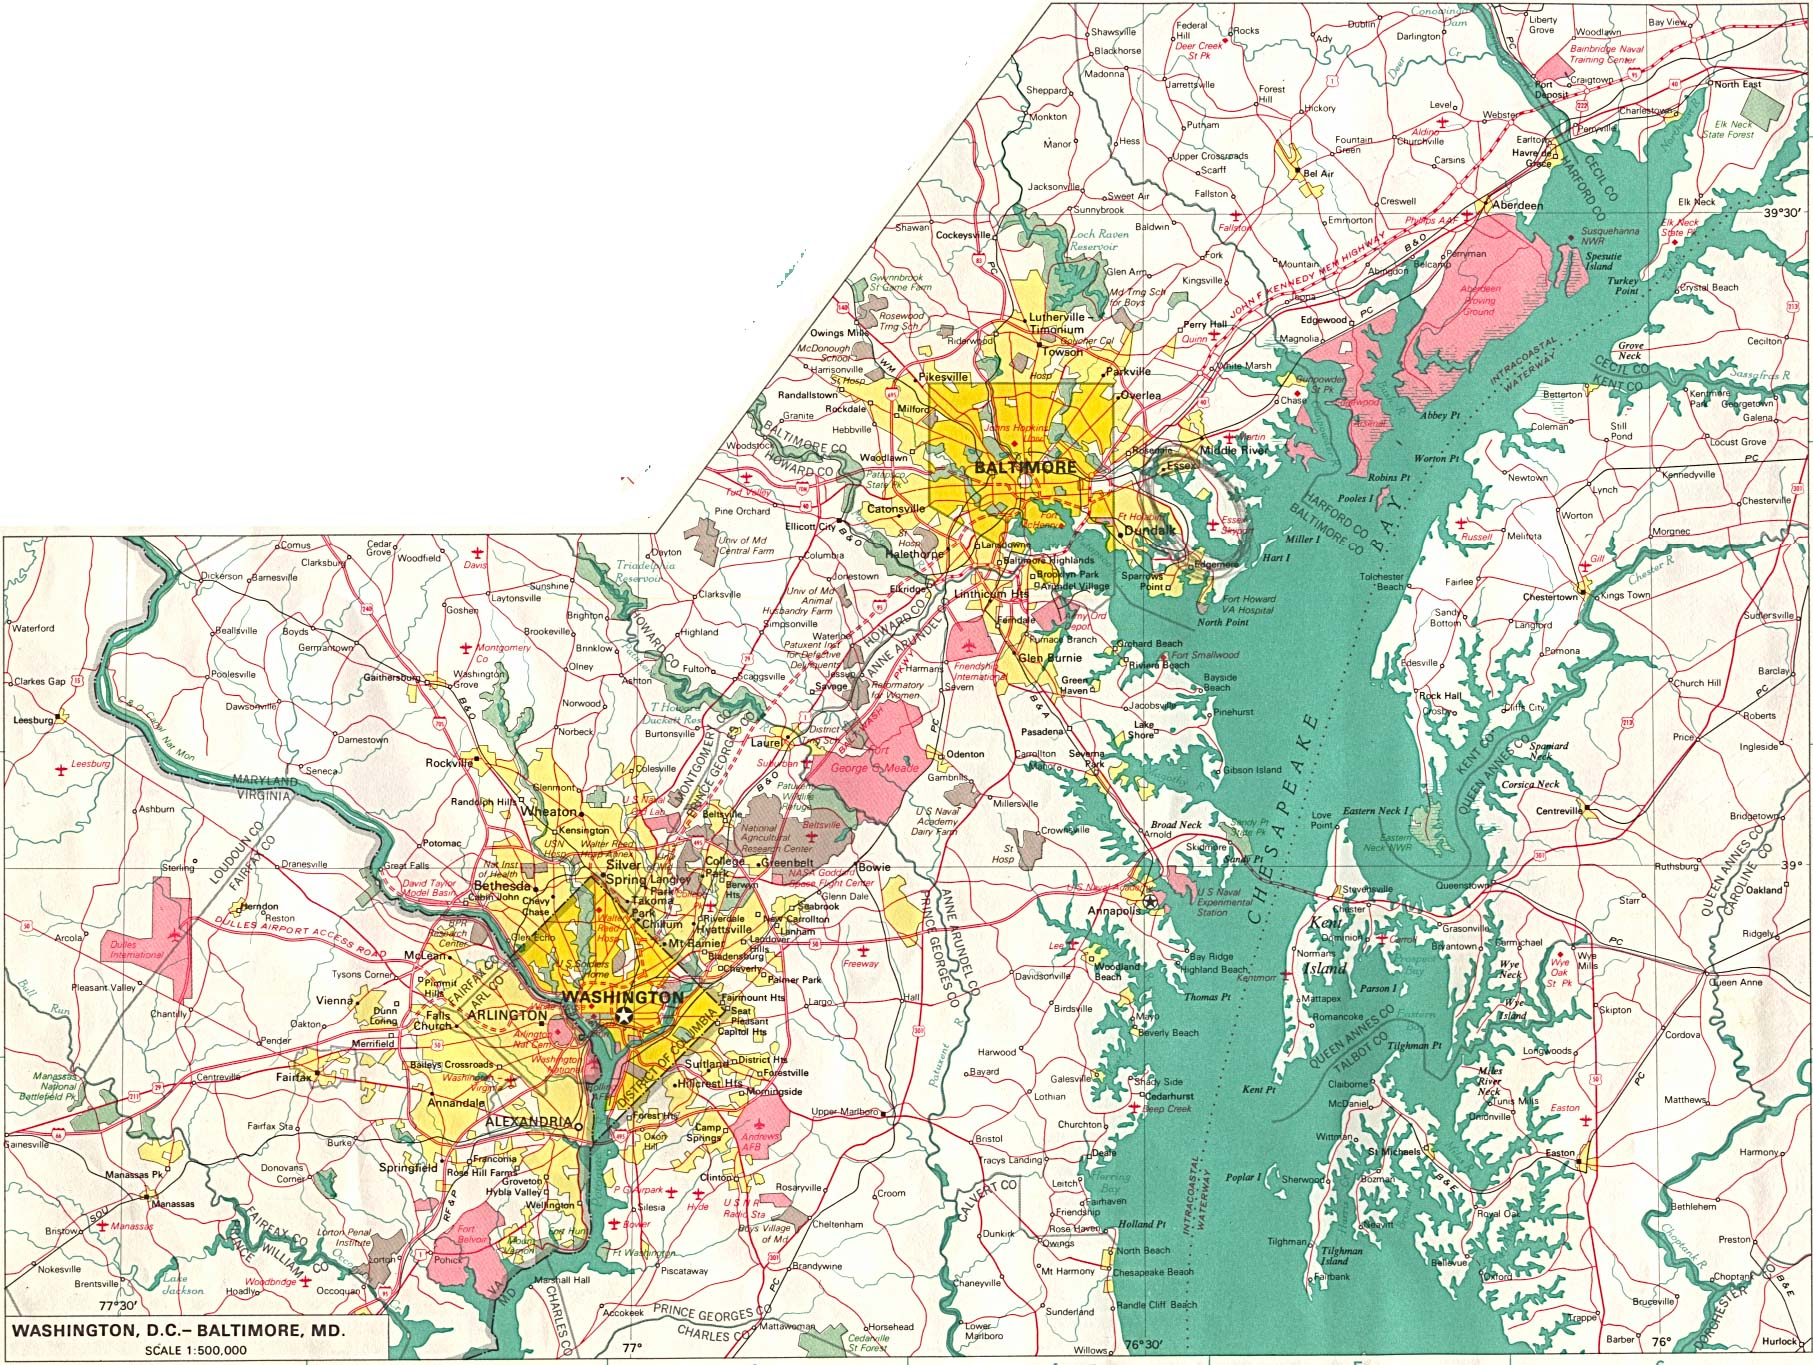 Washington DC And Baltimore MD City Map Washington DC Mappery - Map of washington cities